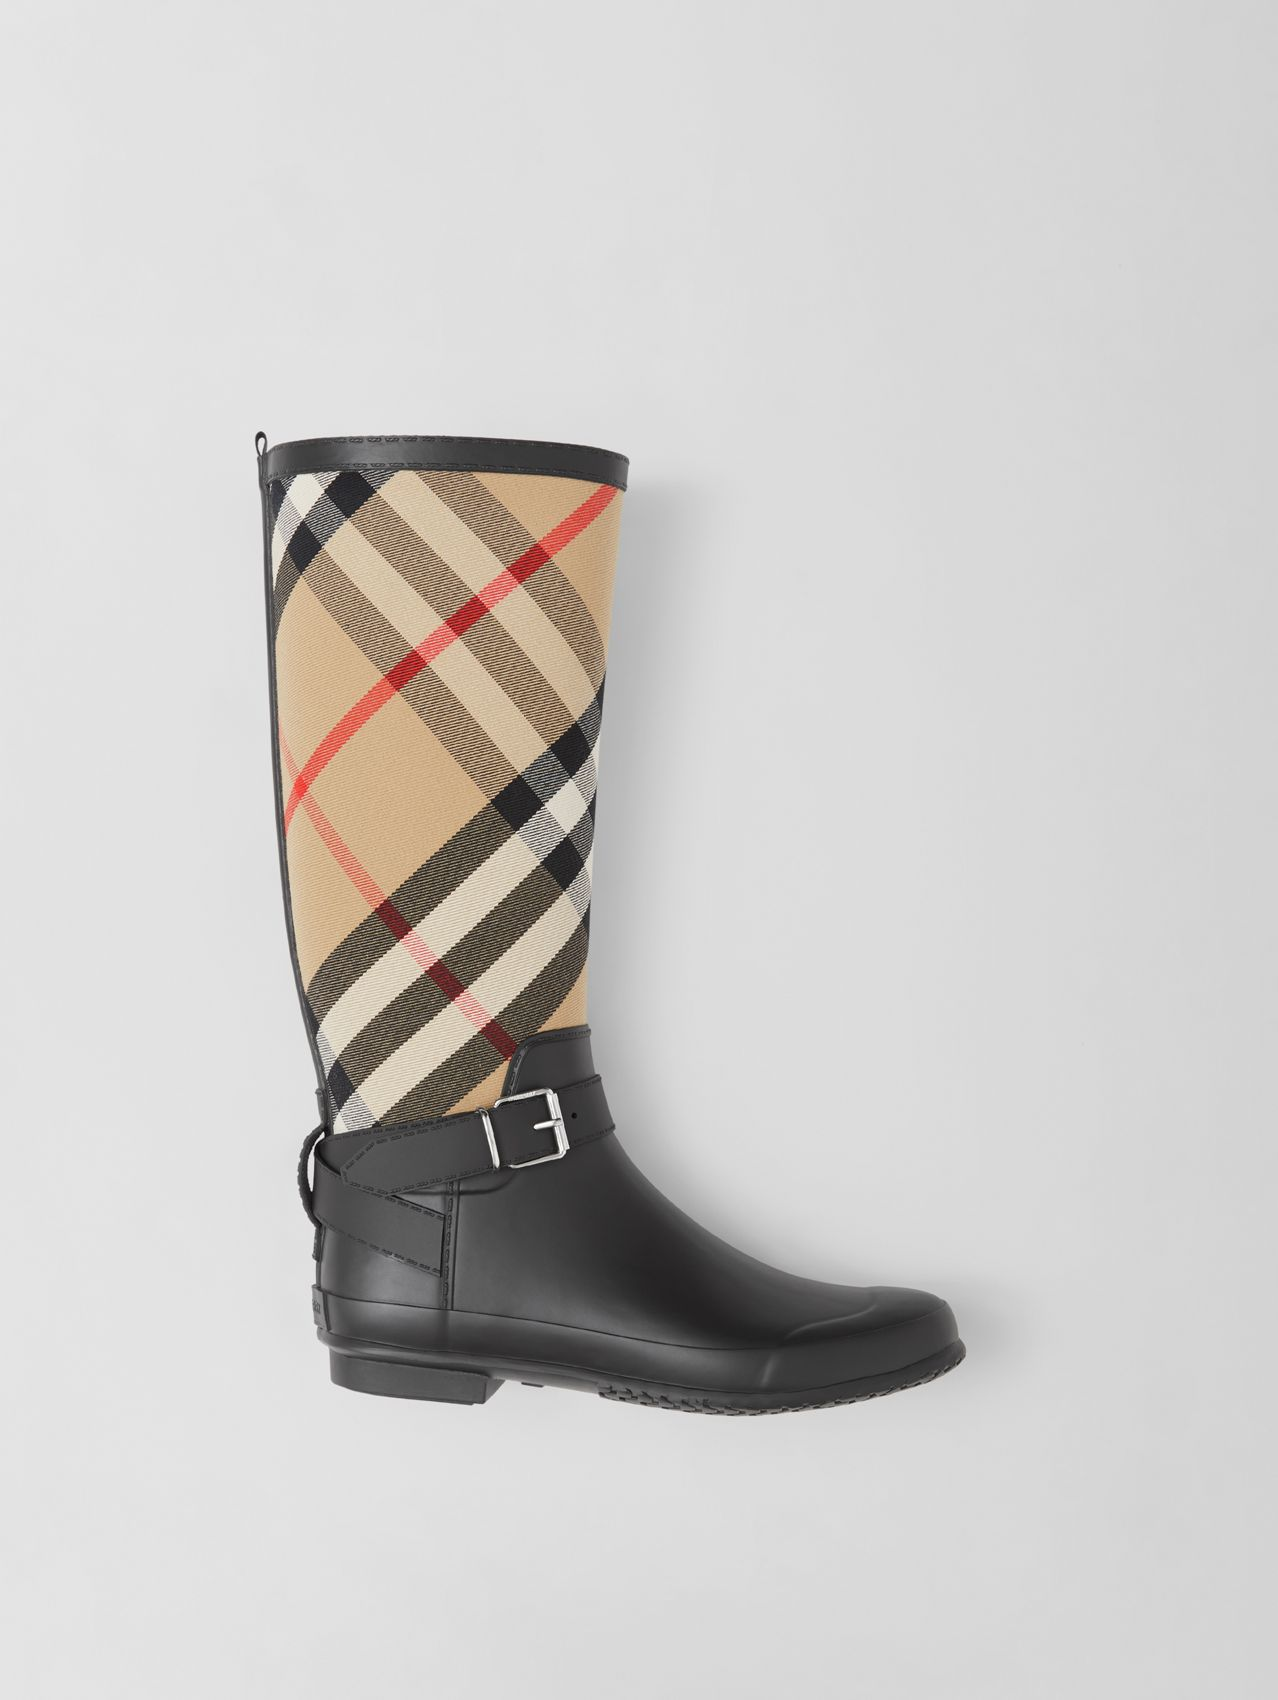 Strap Detail House Check and Rubber Rain Boots in Black/archive Beige